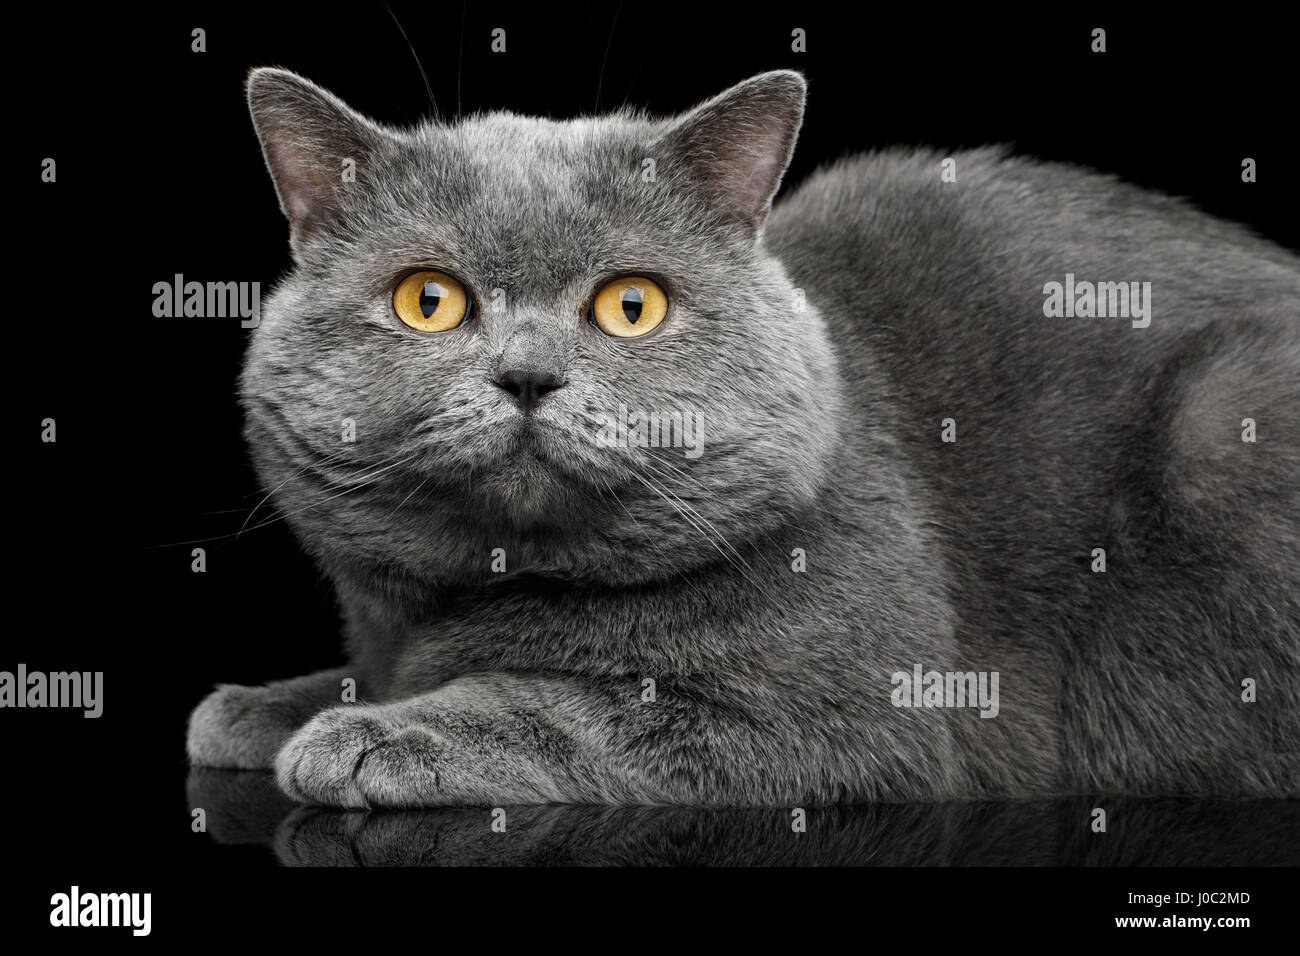 British shorthair grey cat with big wide face Lying on Isolated